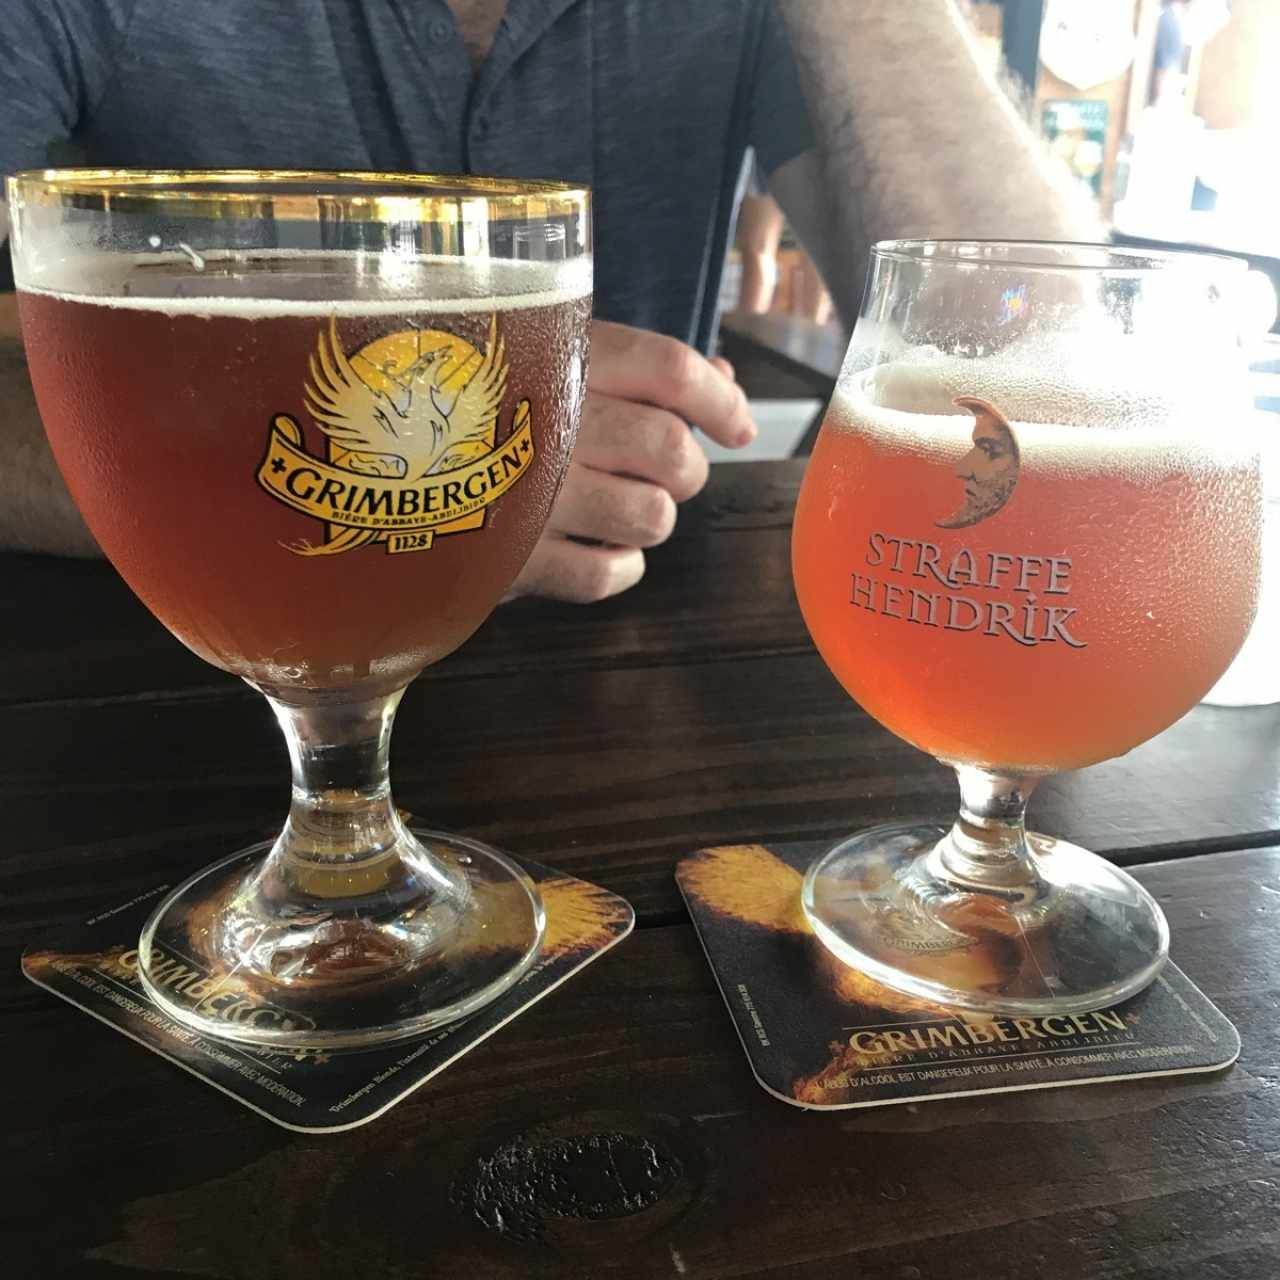 straffe hendrick and maredsous tripel